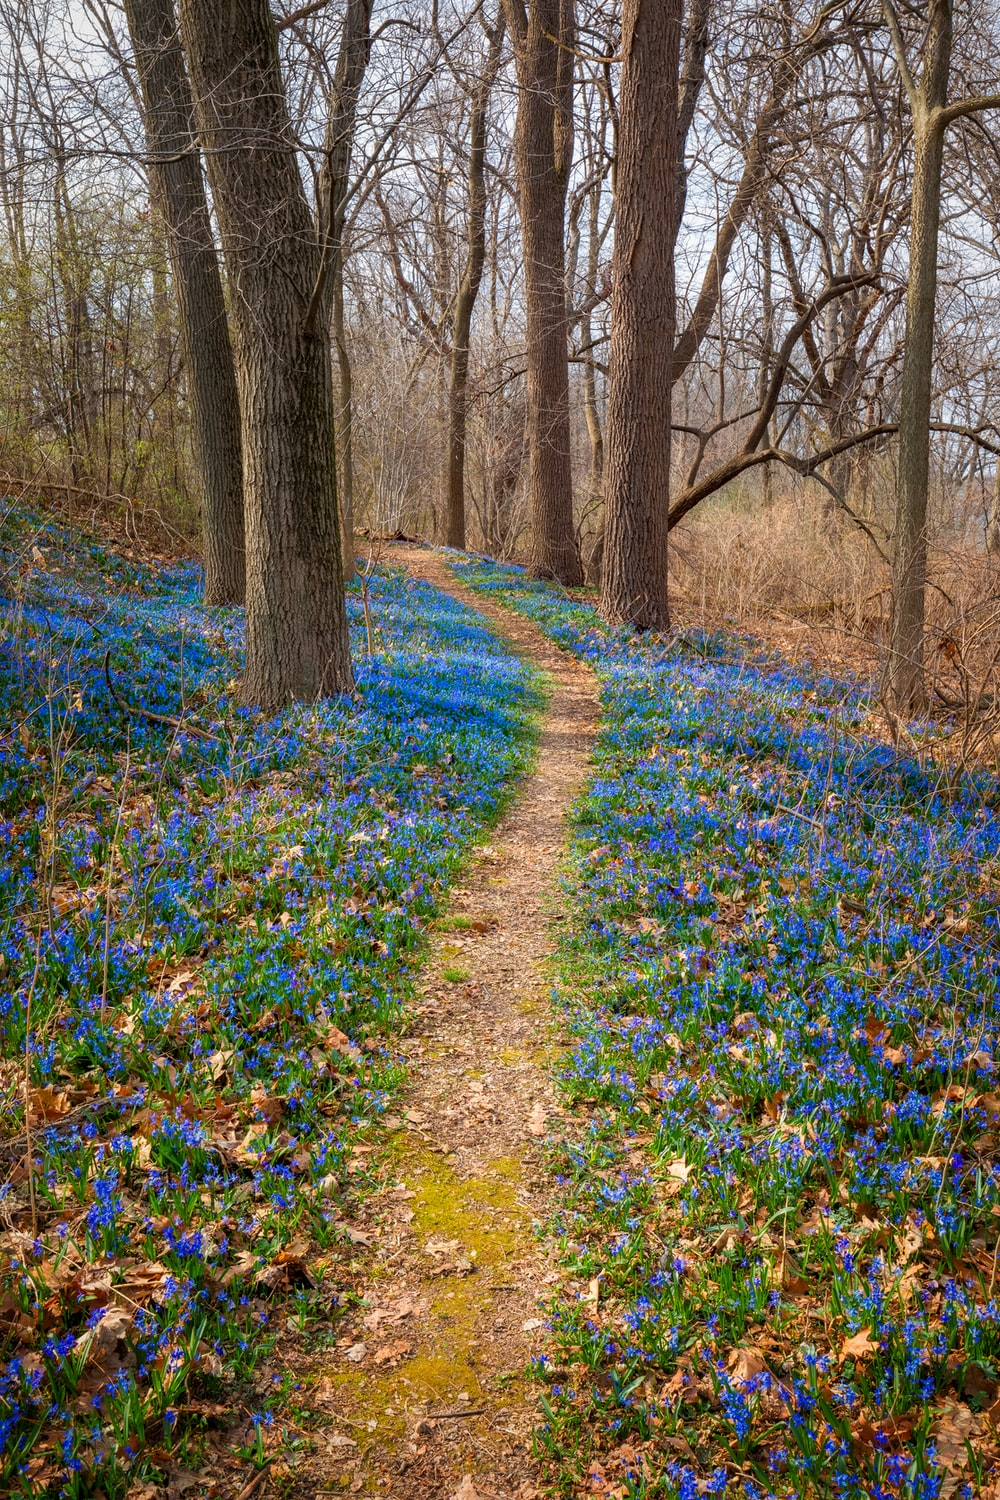 blue flowers on the ground